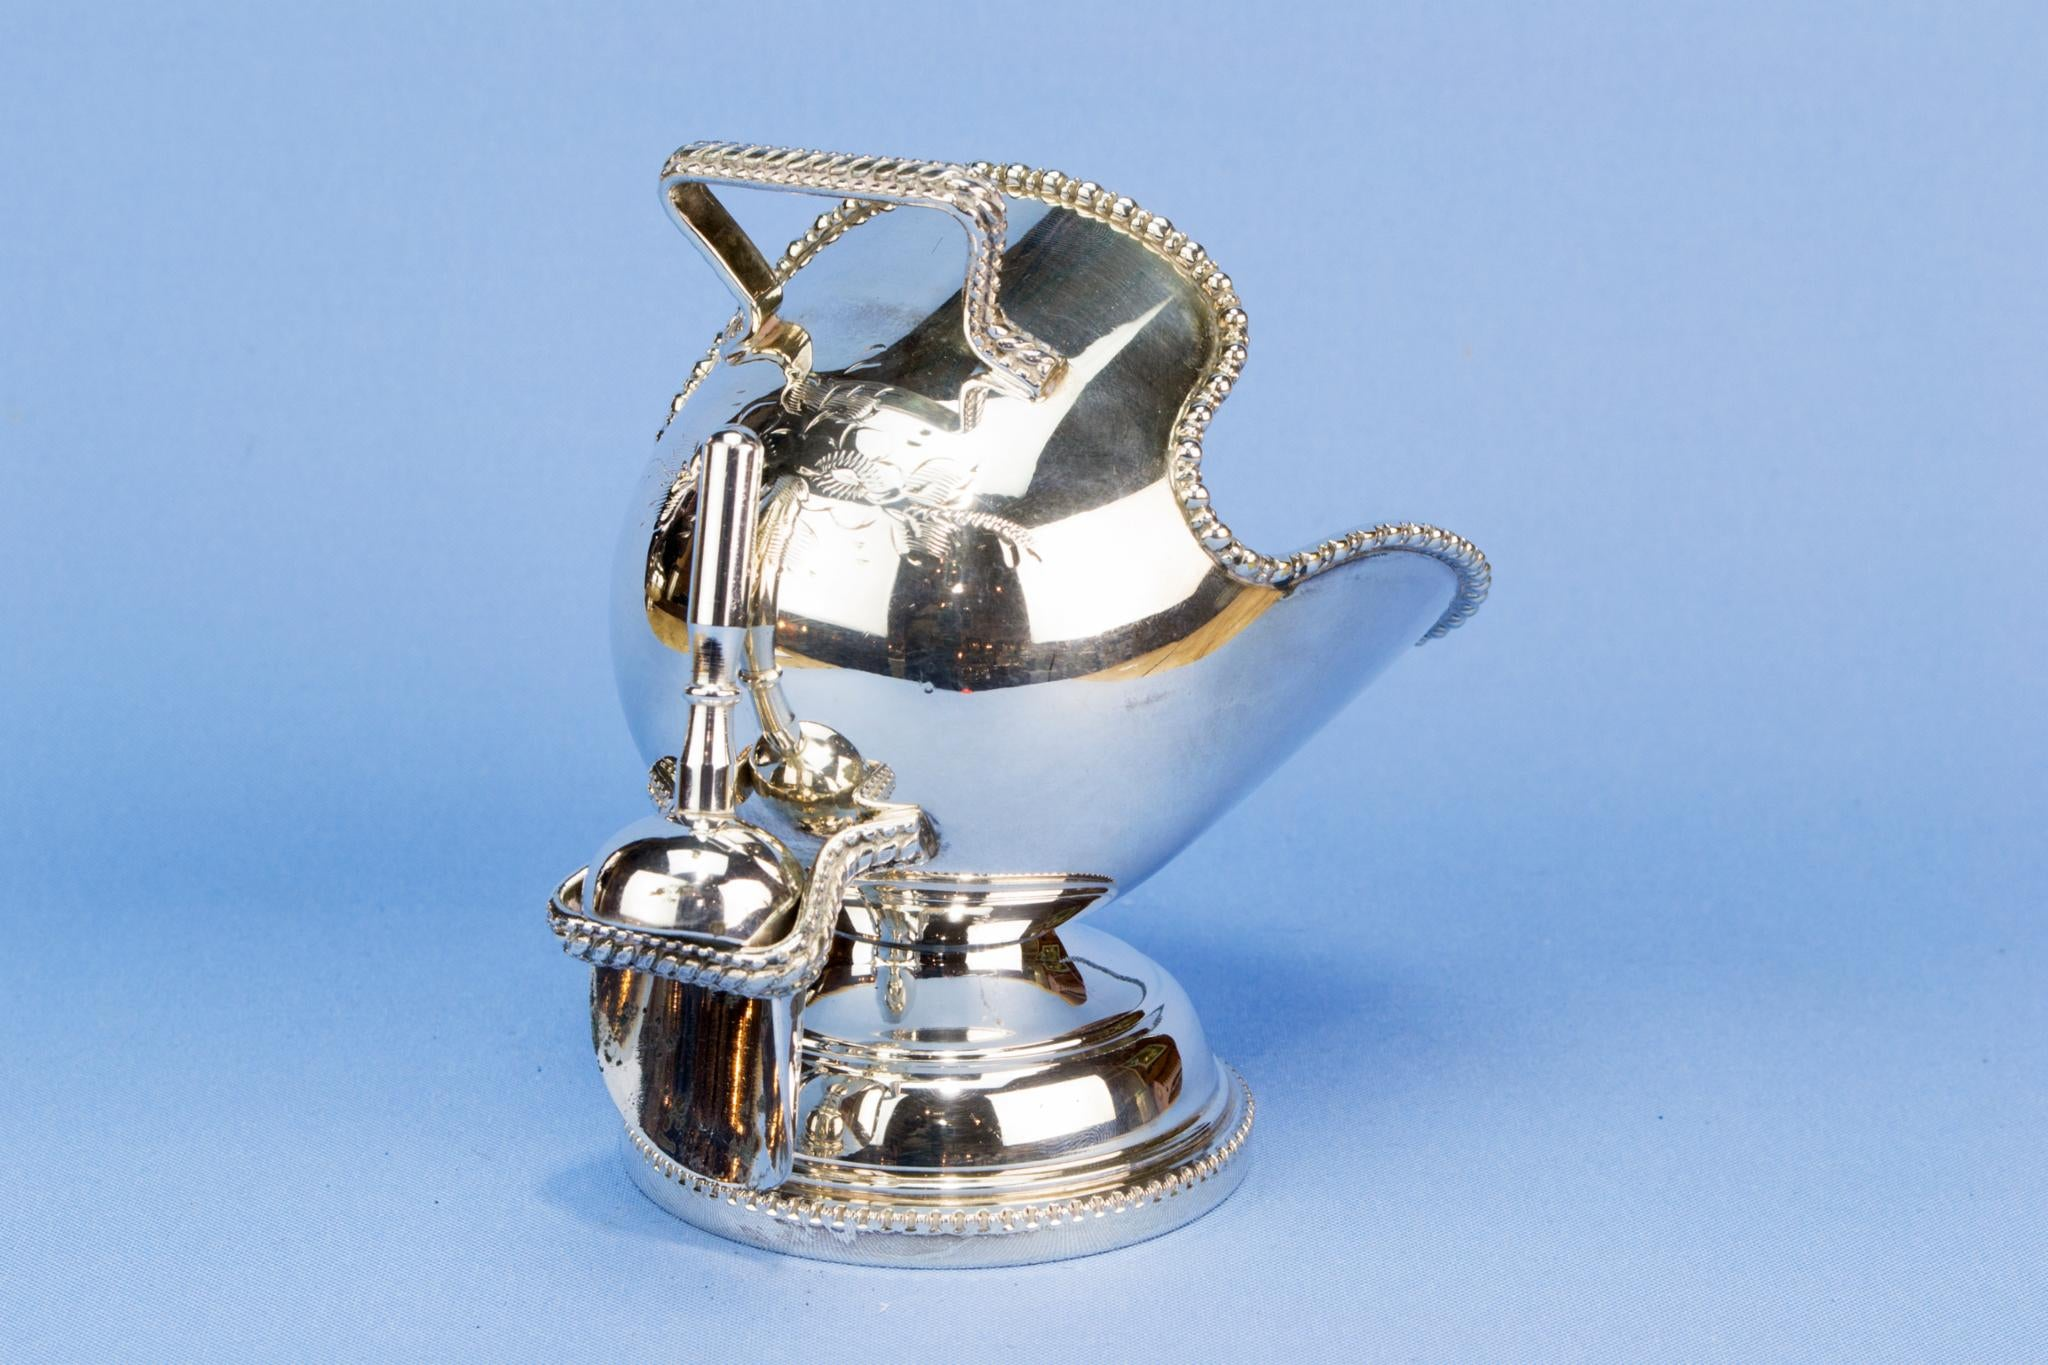 Silver plated sugar bowl and spoon